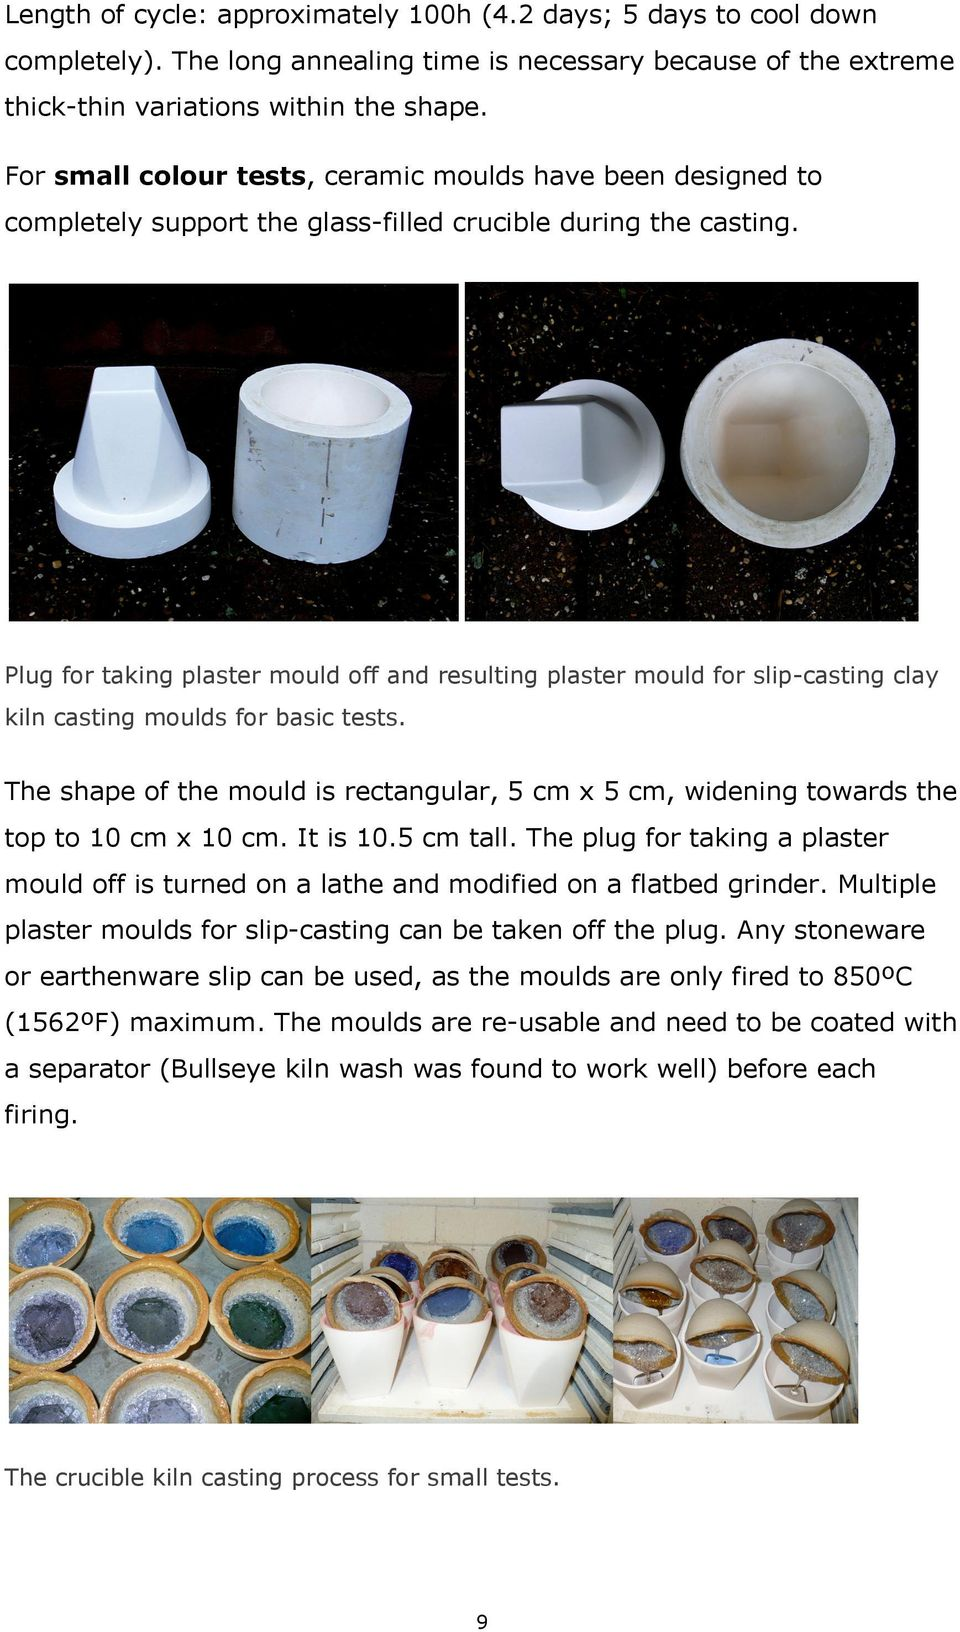 Plug for taking plaster mould off and resulting plaster mould for slip-casting clay kiln casting moulds for basic tests.